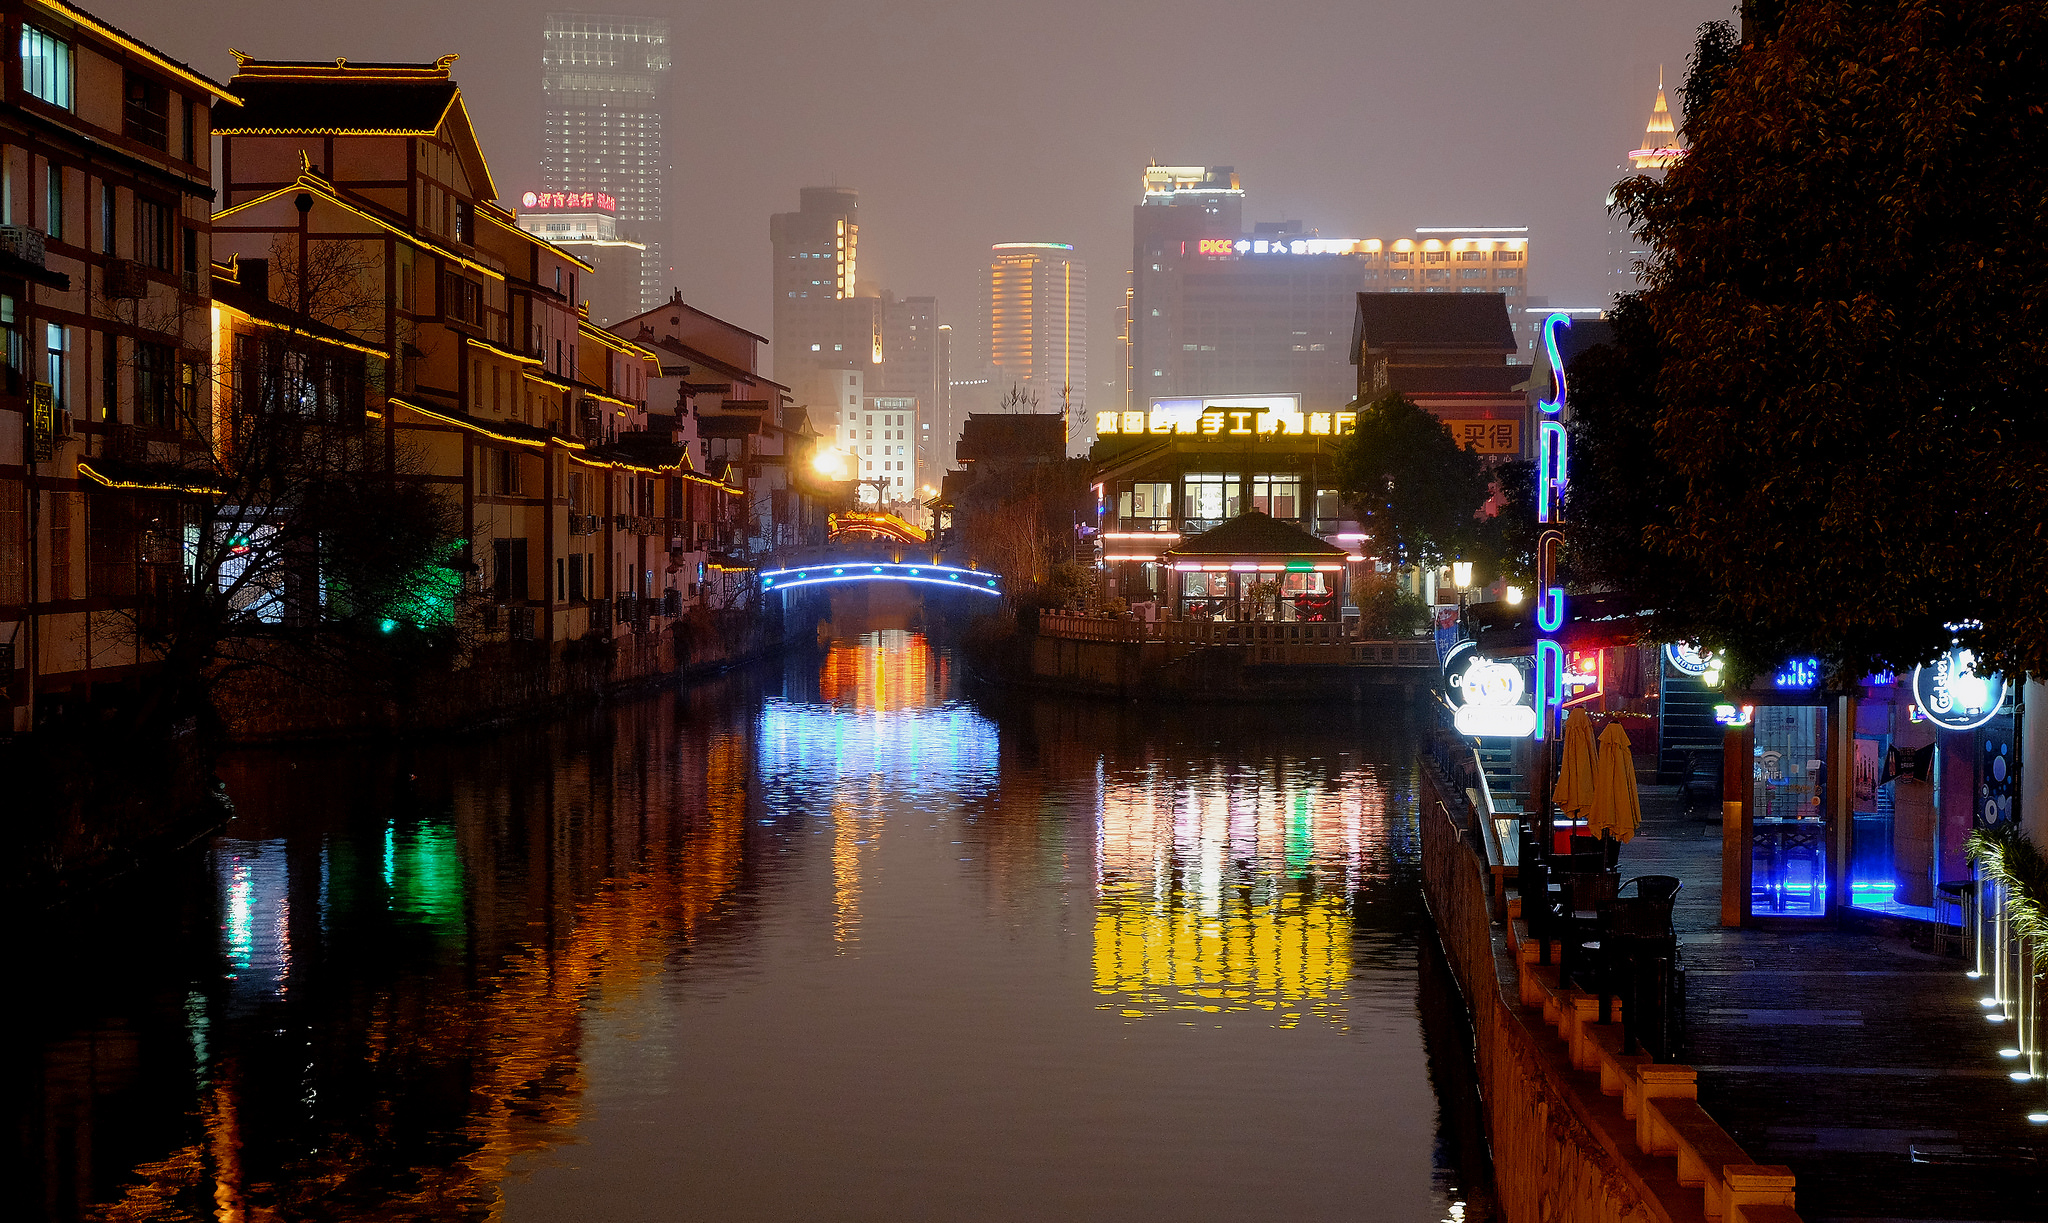 <p>Wuxi at night. Flickr/Thomas Depenbusch</p>